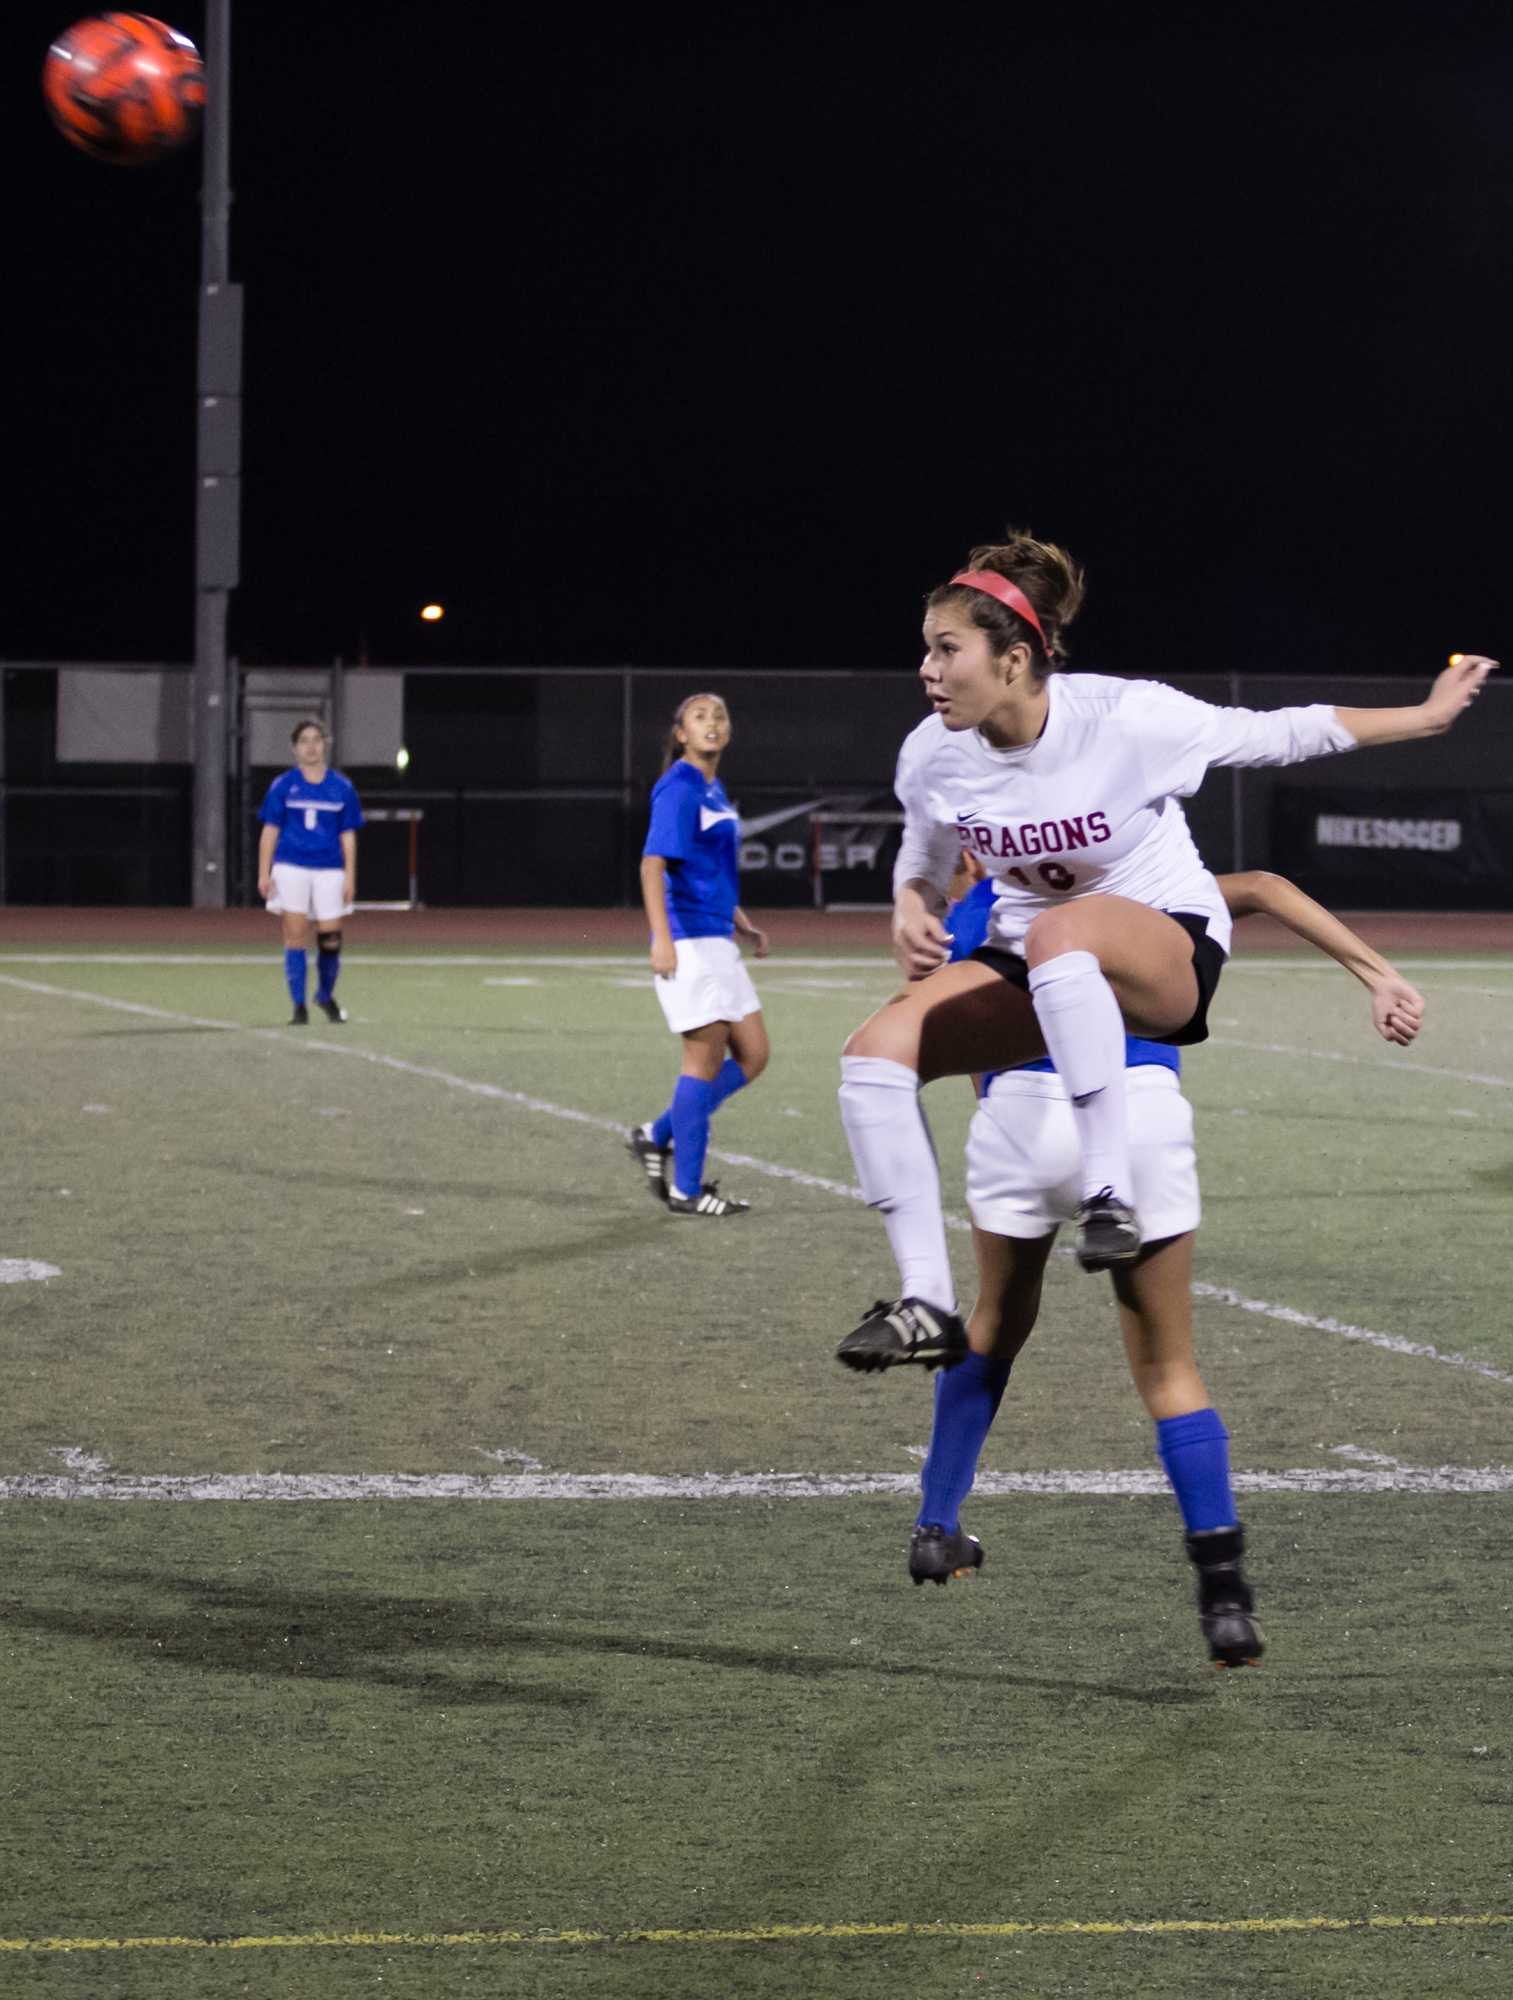 Senior Josselyne Pereda hearts the ball away from the opponent's side. Credit: Josh Ren/The Foothill Dragon Press